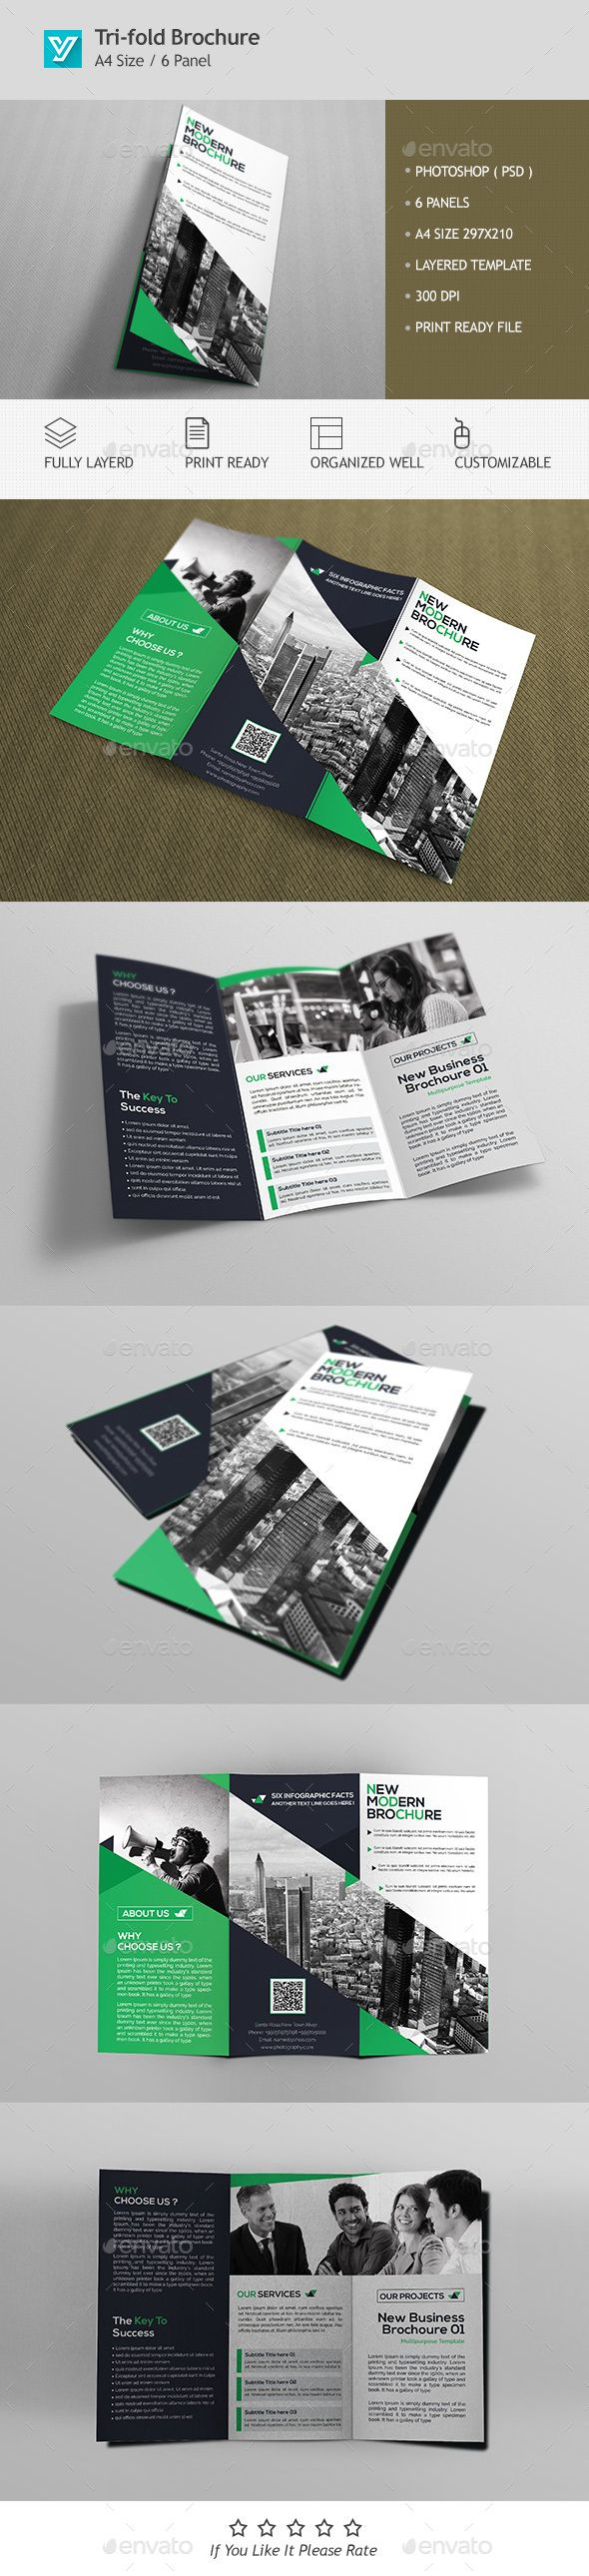 Corporate Tri-fold Brochure Template PSD #design Download: http://graphicriver.net/item/corporate-trifold-brochure-template-02/13434485?ref=ksioks